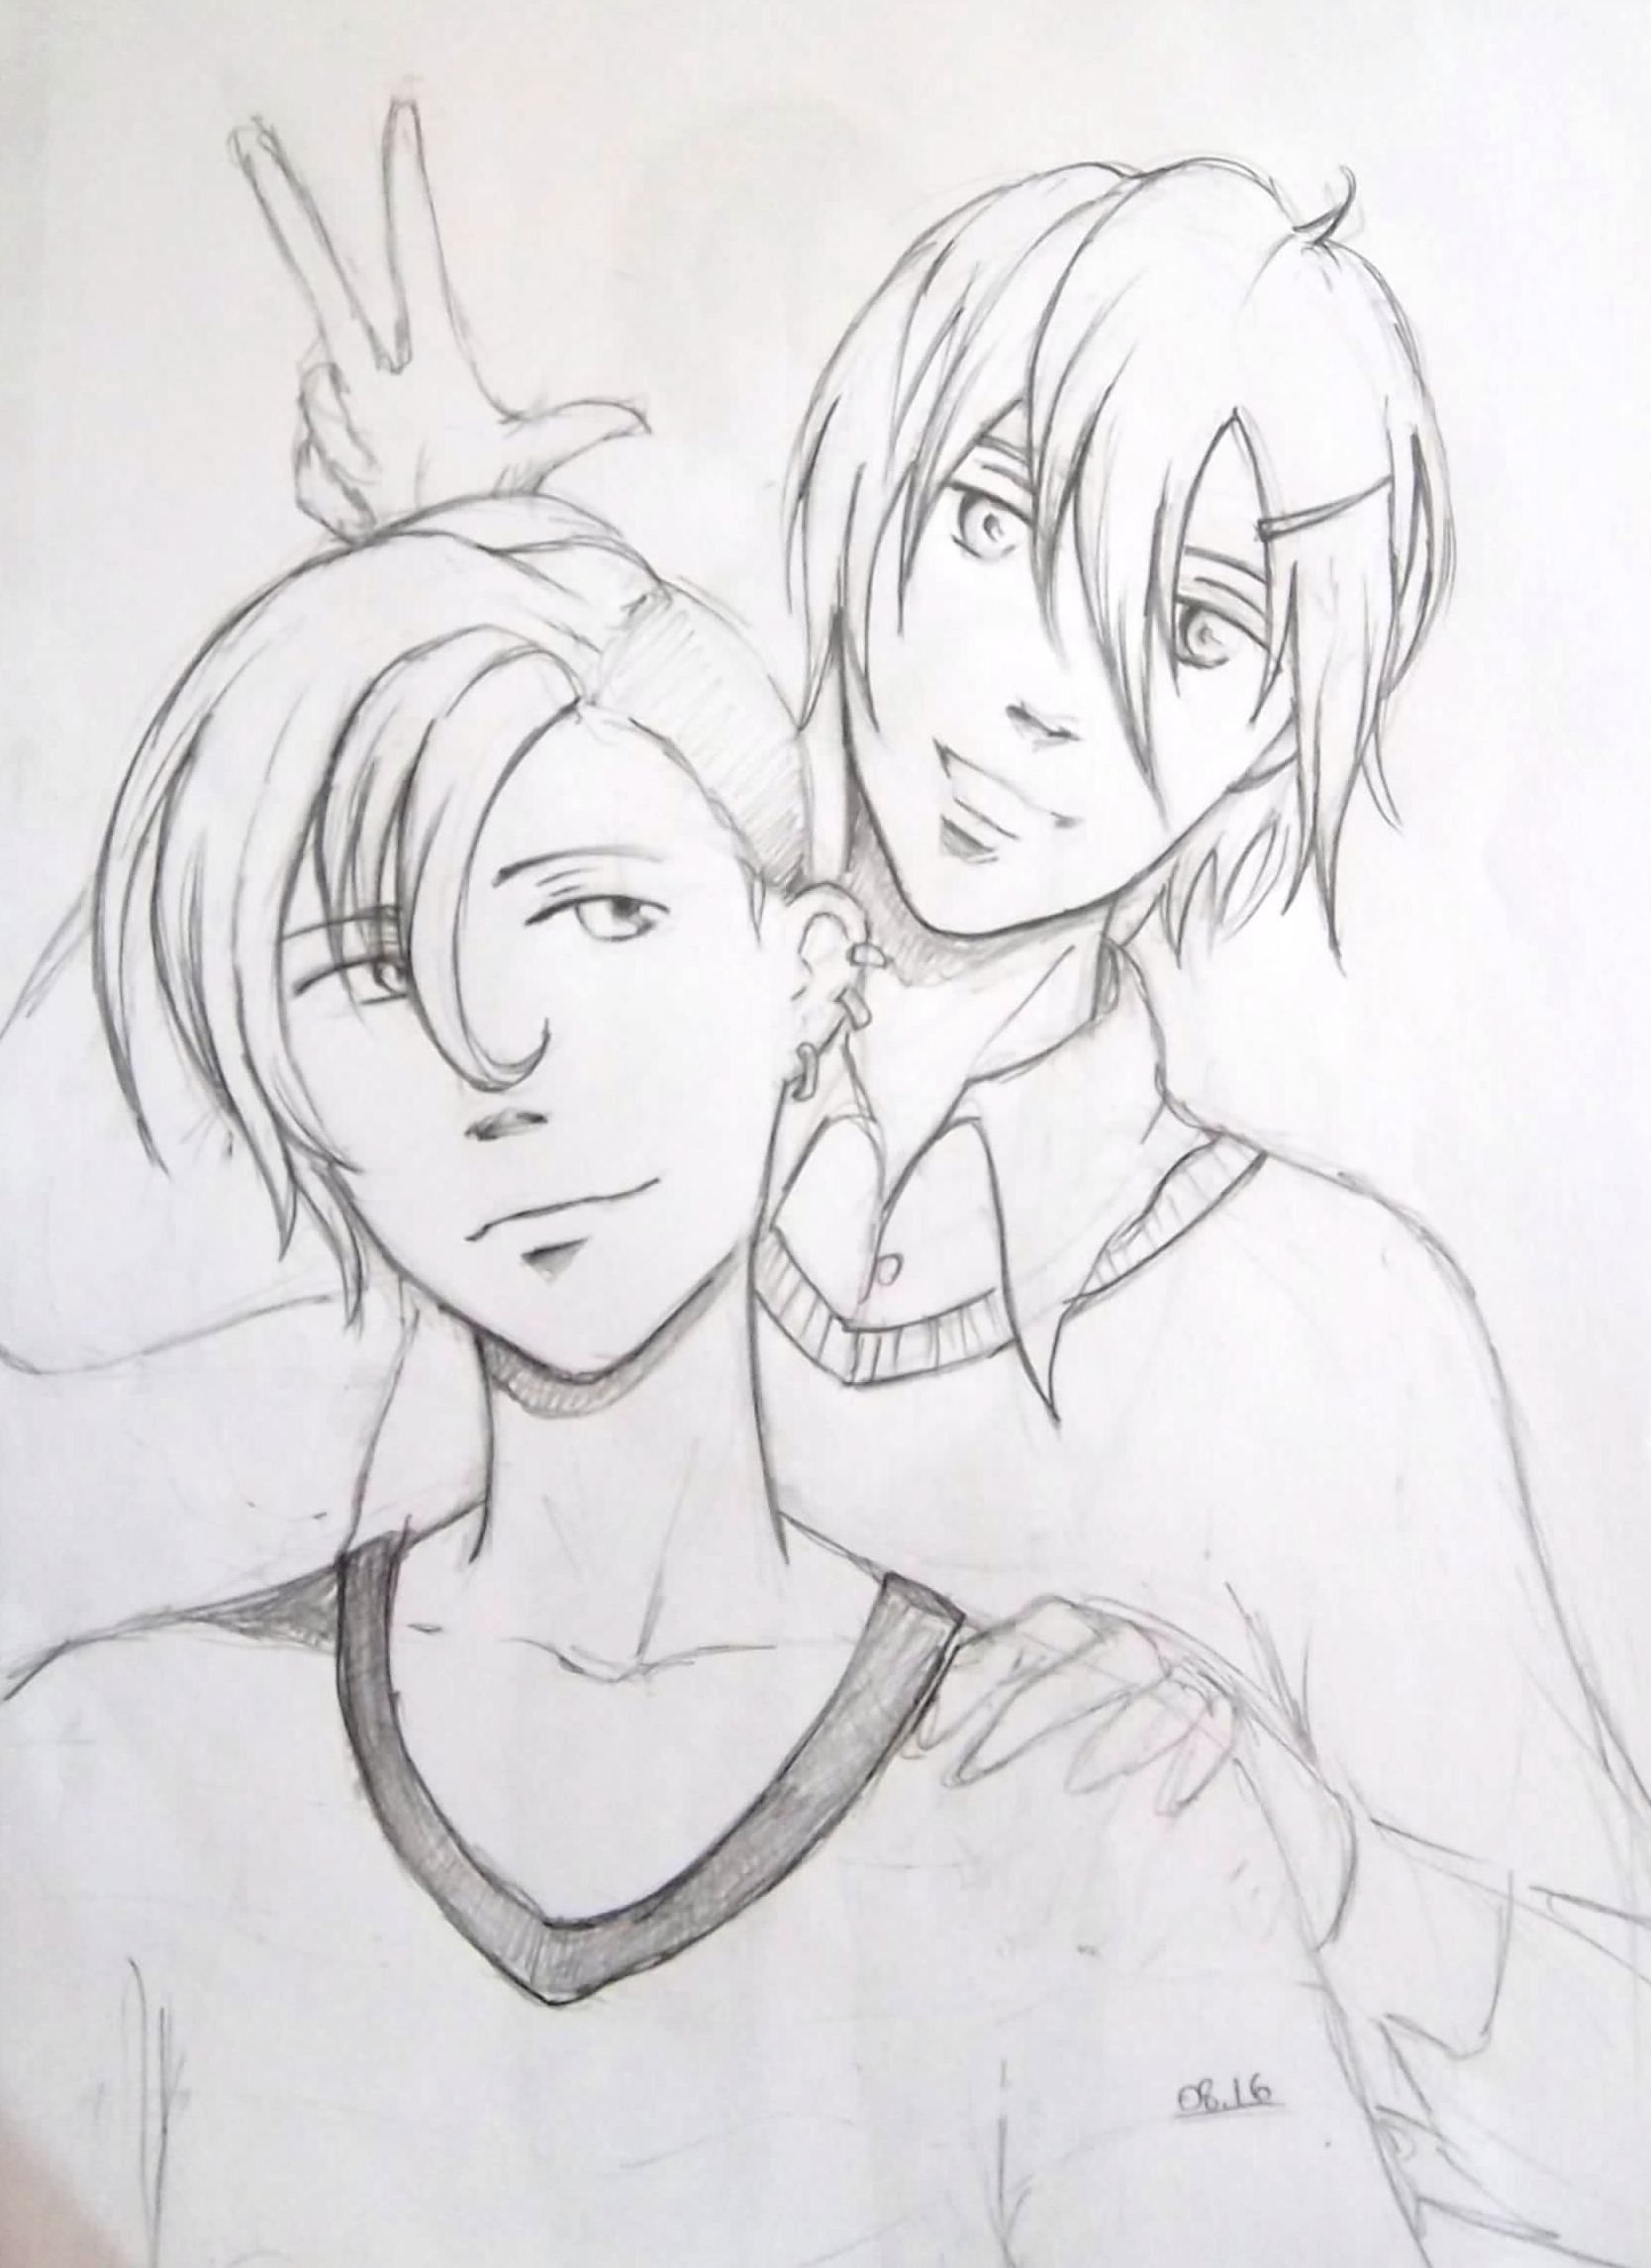 pencil sketch manga/anime boys Szkice i rysunki